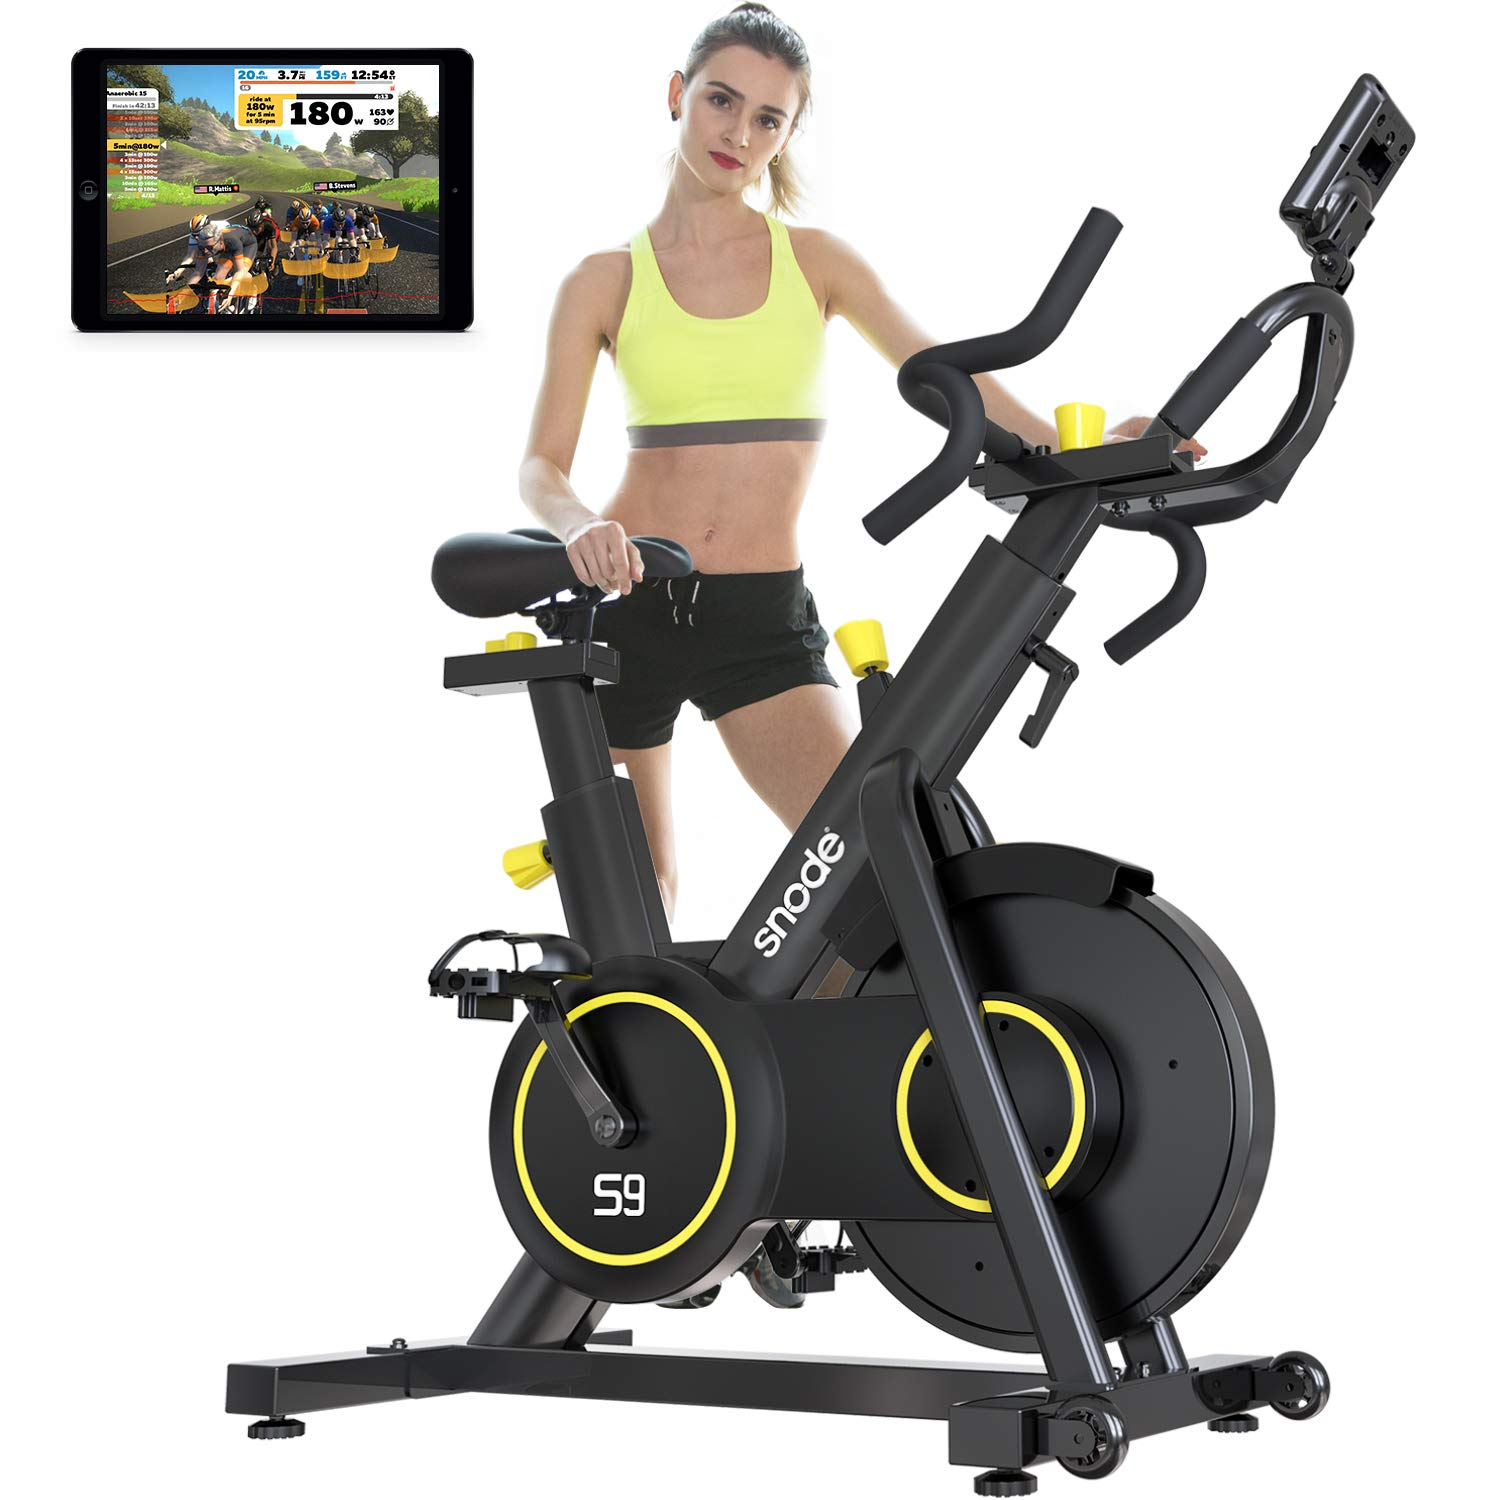 SNODE Magnetic Exercise Bike S9 with APP- Professional Cycling Bike with 4-way Adjustable Multifunctional Handlebar, Compatible with ZWIFT, Kinomap, Iconsole - Max 331 lbs